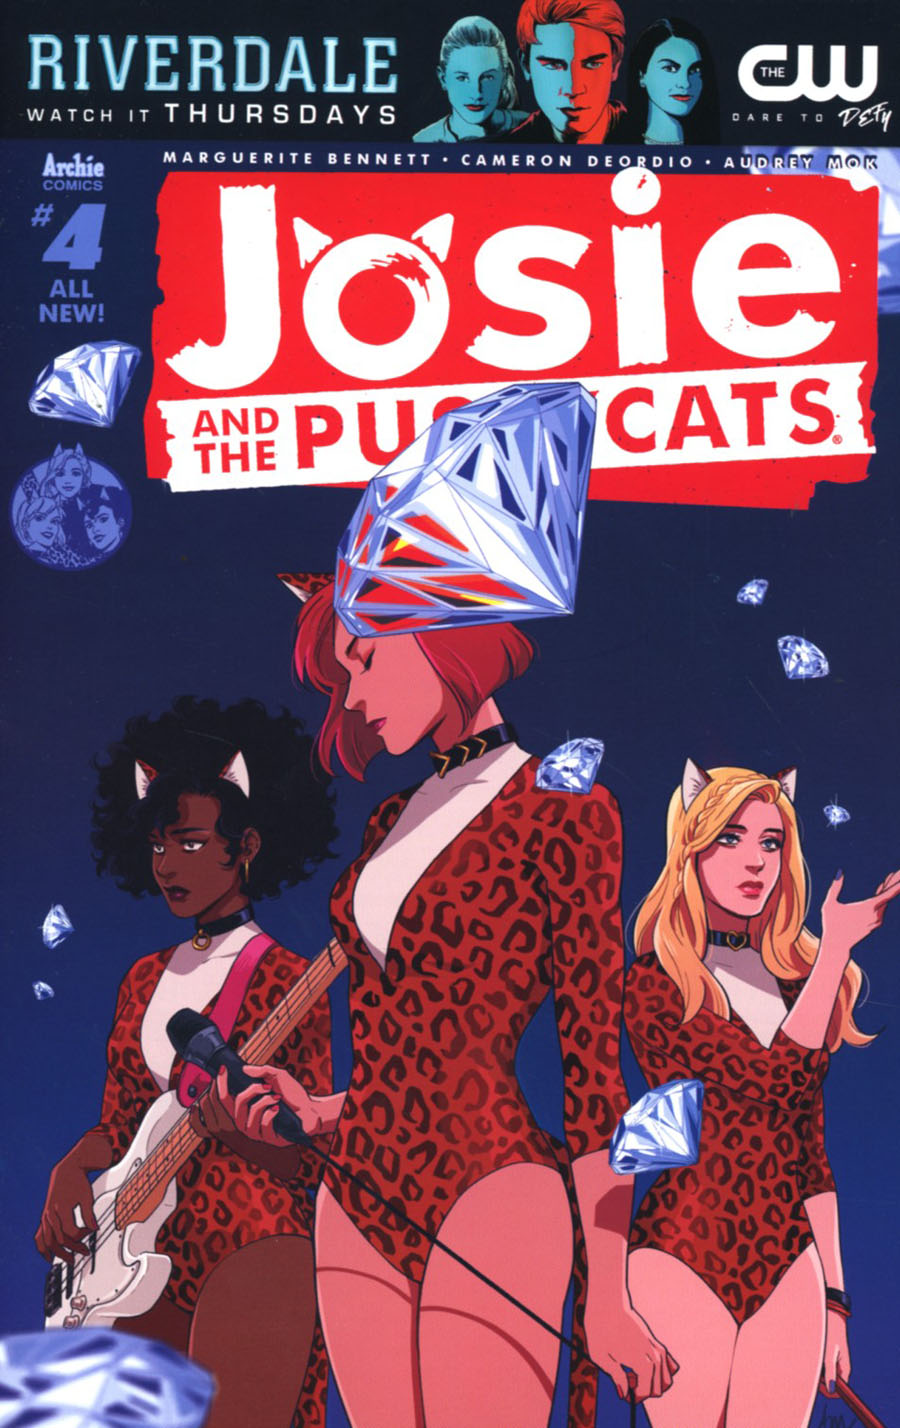 Josie And The Pussycats Vol 2 #4 Cover A Regular Audrey Mok Cover